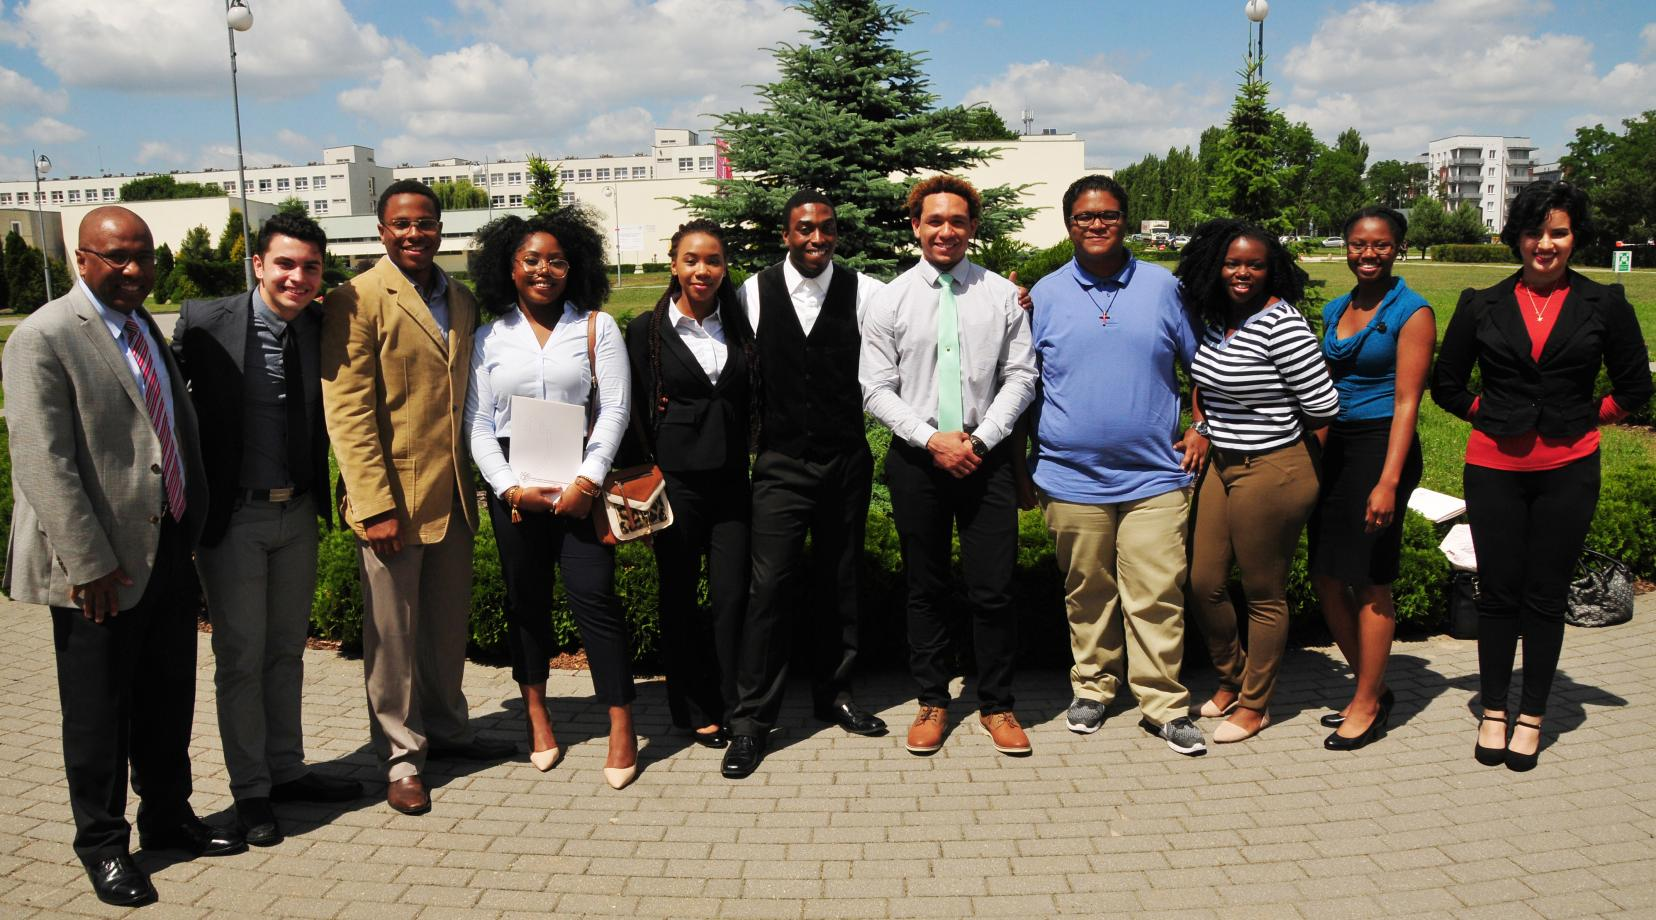 DSU President Harry L. Williams poses with the I-STARS students in Poland